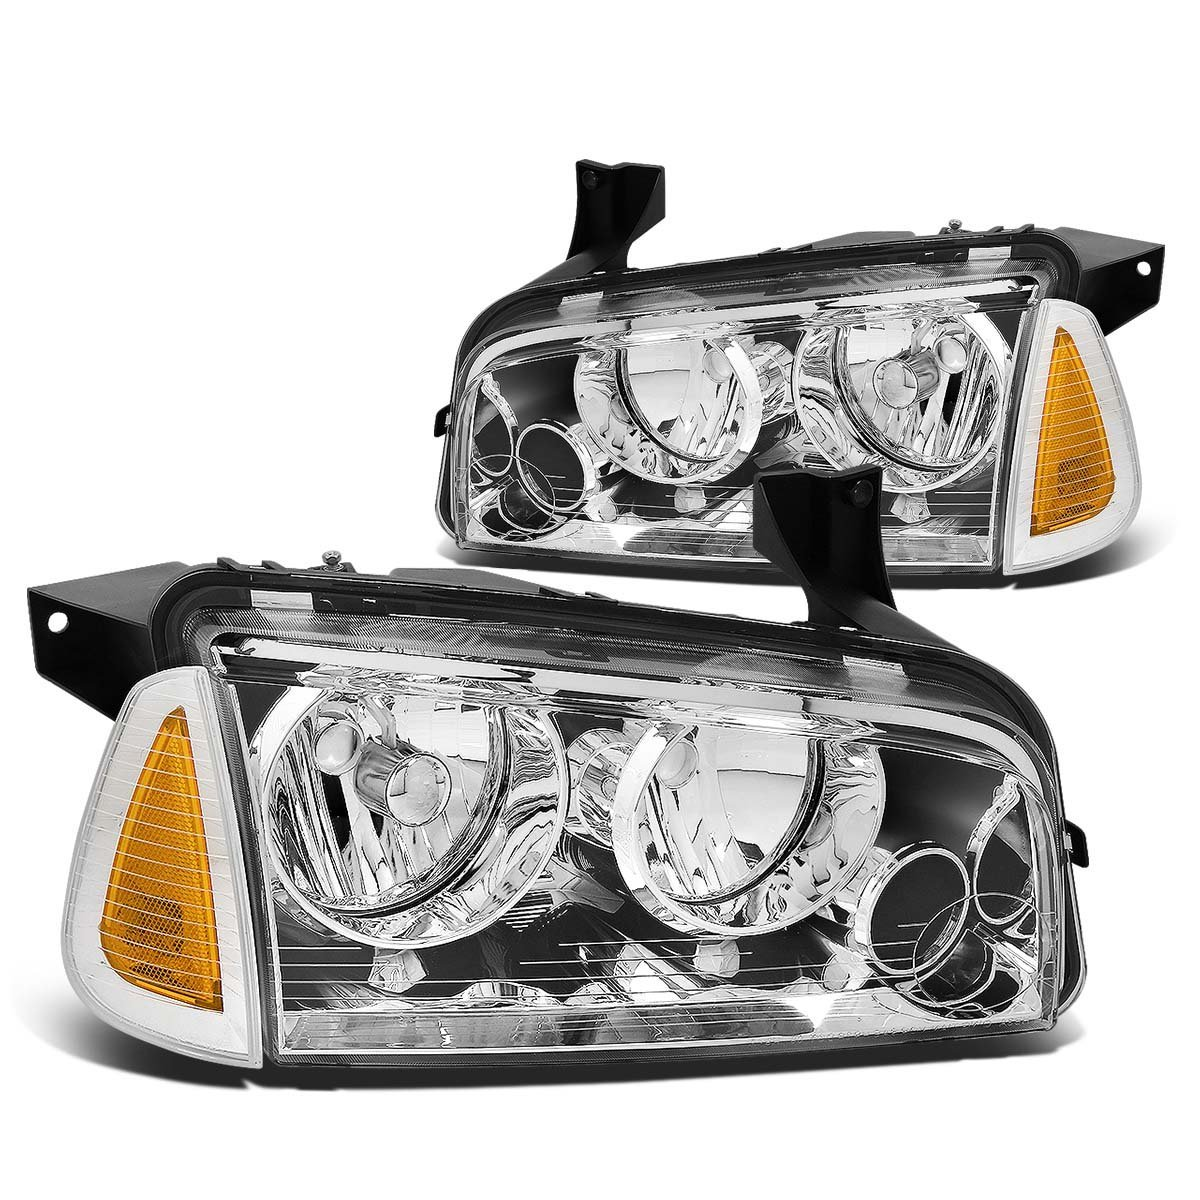 Partslink FO2502200 Multiple Manufacturers FO2502200C OE Replacement Headlight FORD CROWN VICTORIA 1998-2011